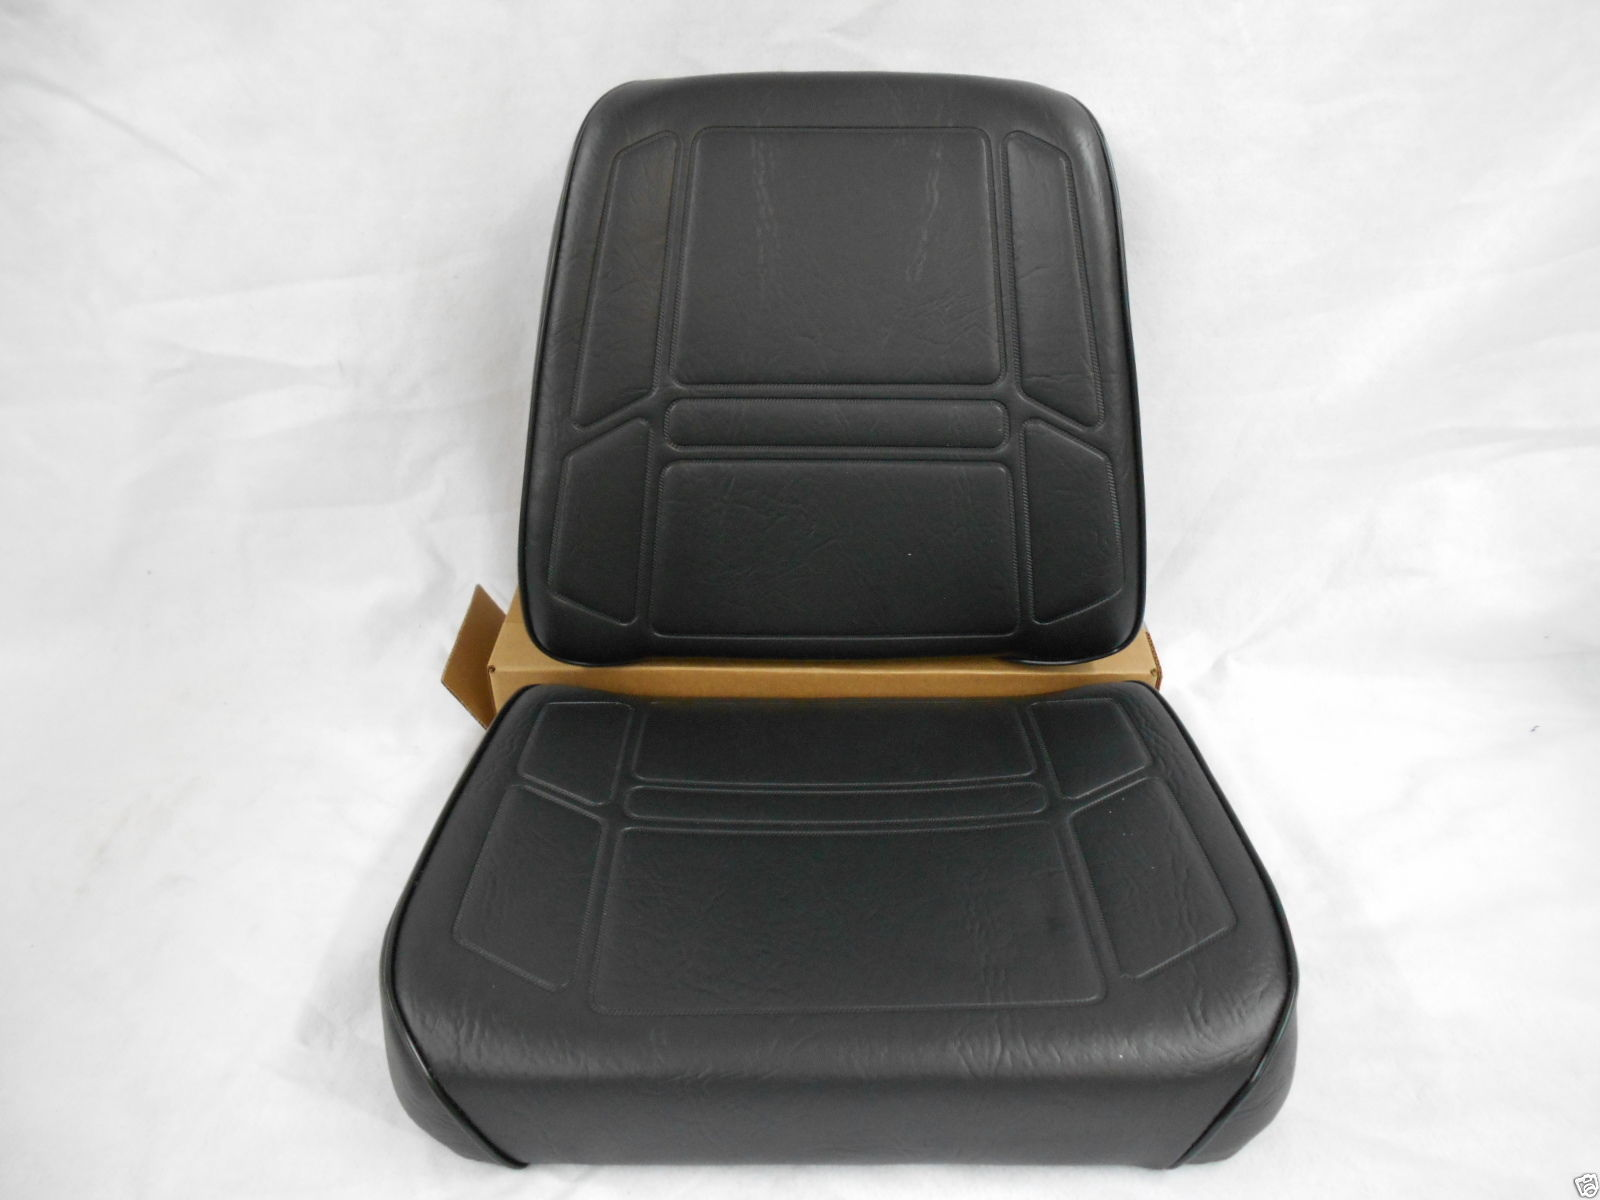 kubota seat replacement cushion set m series tractor m4030 m4700 rh seat warehouse com Kubota M4900 Radio Wiring Diagram Kubota M4900 Radio Wiring Diagram